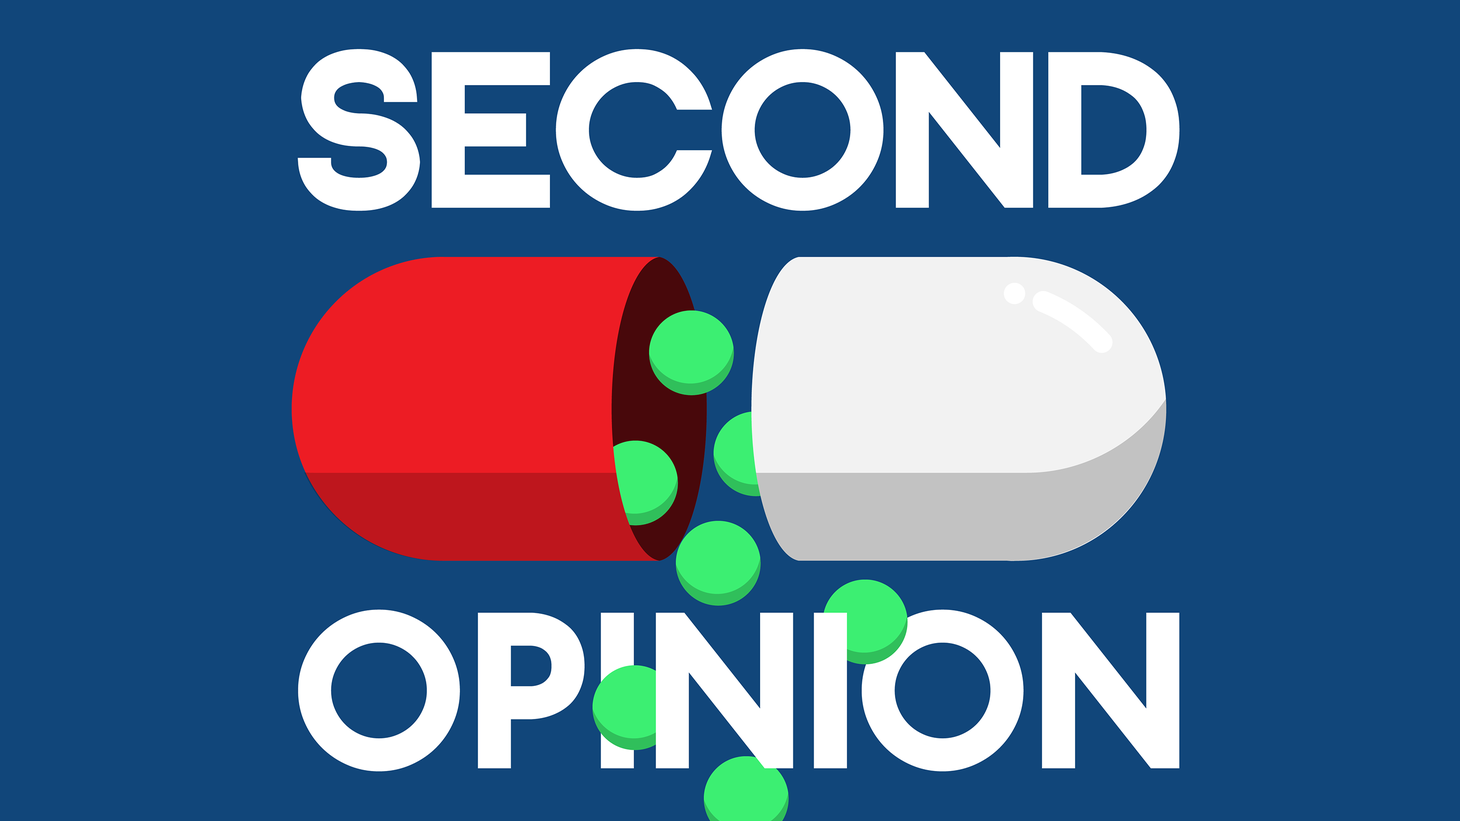 For a variety of different controlled drugs, such as opioids and stimulants, prescriptions are more common in majority white areas. What is the impact of this disparity?